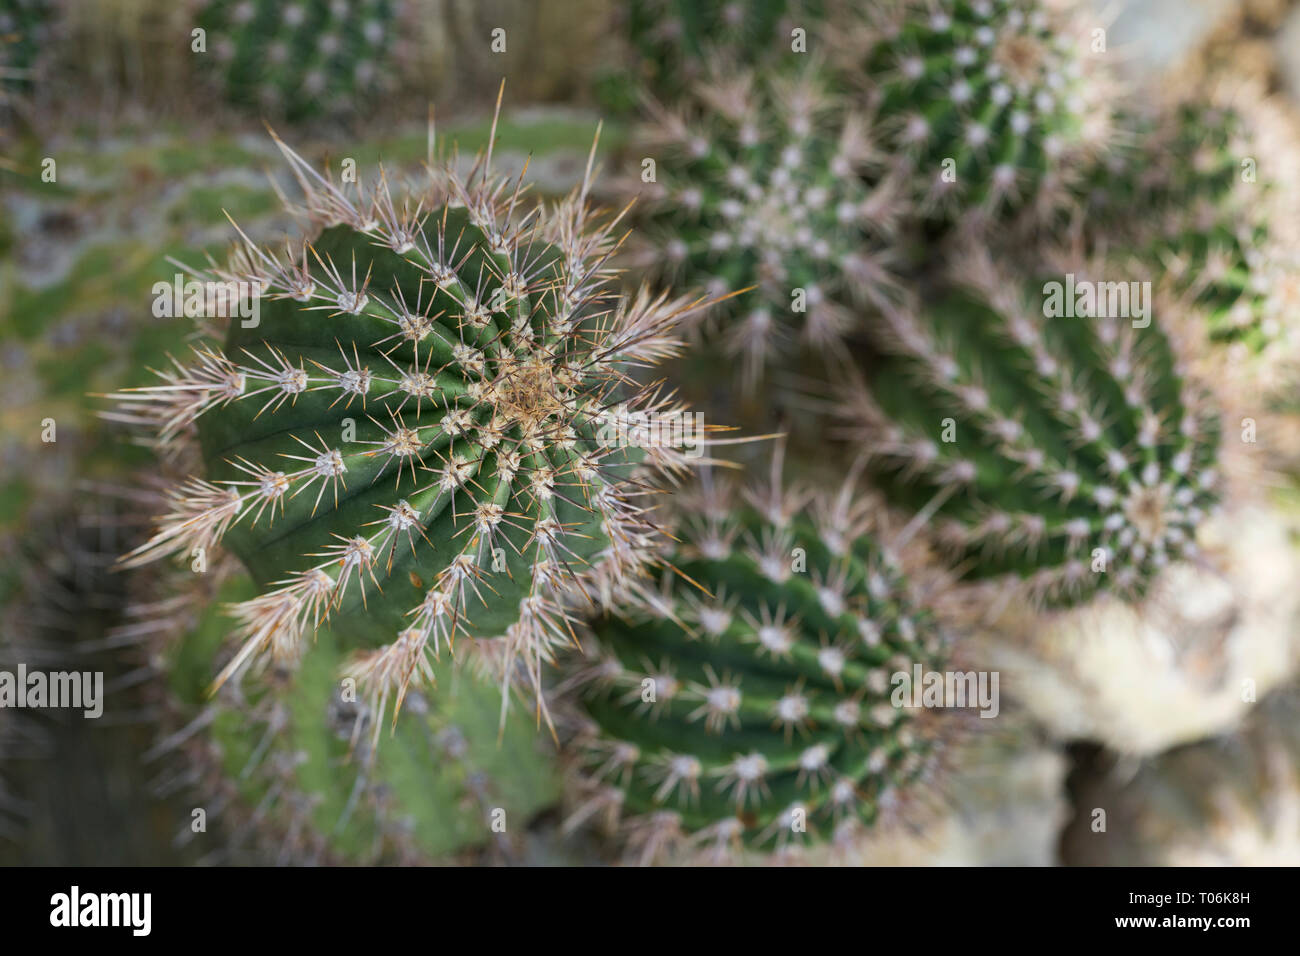 Close-up of spiky Echinopsis leucantha cacti viewed from above Stock Photo